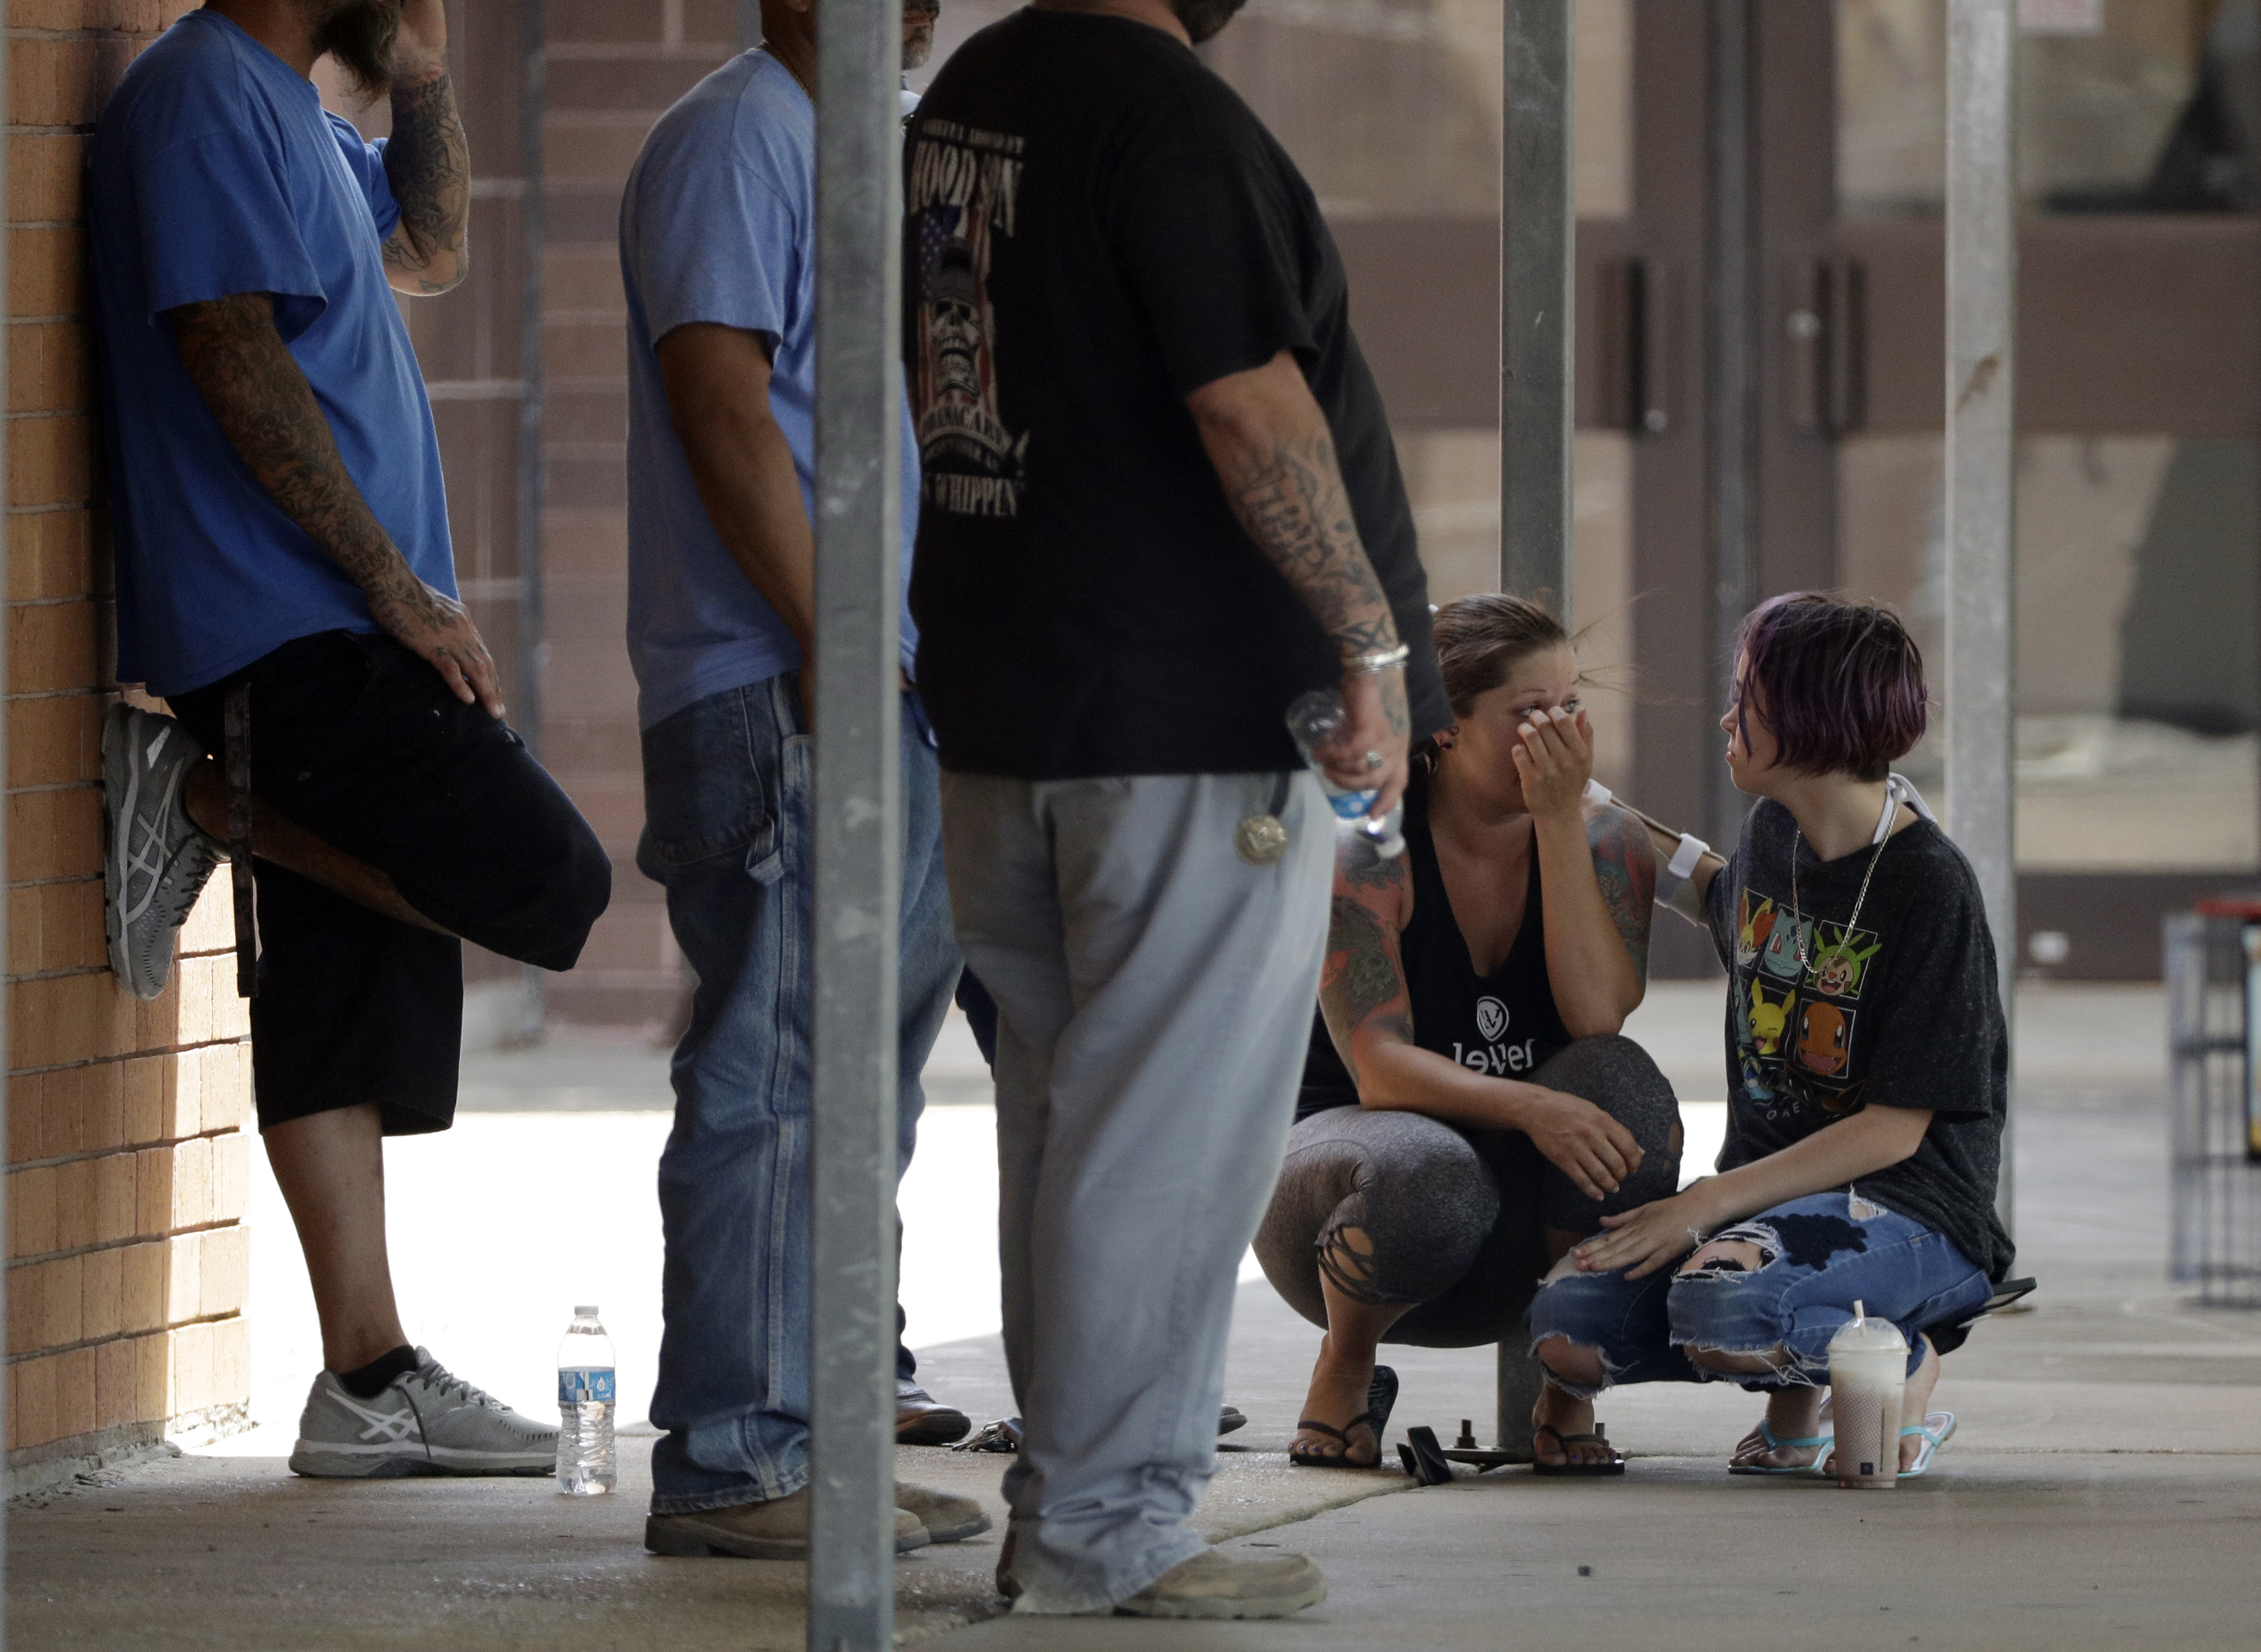 <div class='meta'><div class='origin-logo' data-origin='AP'></div><span class='caption-text' data-credit='AP'>People react outside the unification center at the Alamo Gym, following a shooting at Santa Fe High School Friday, May 18, 2018, in Santa Fe, Texas. (AP Photo/David J. Phillip)</span></div>